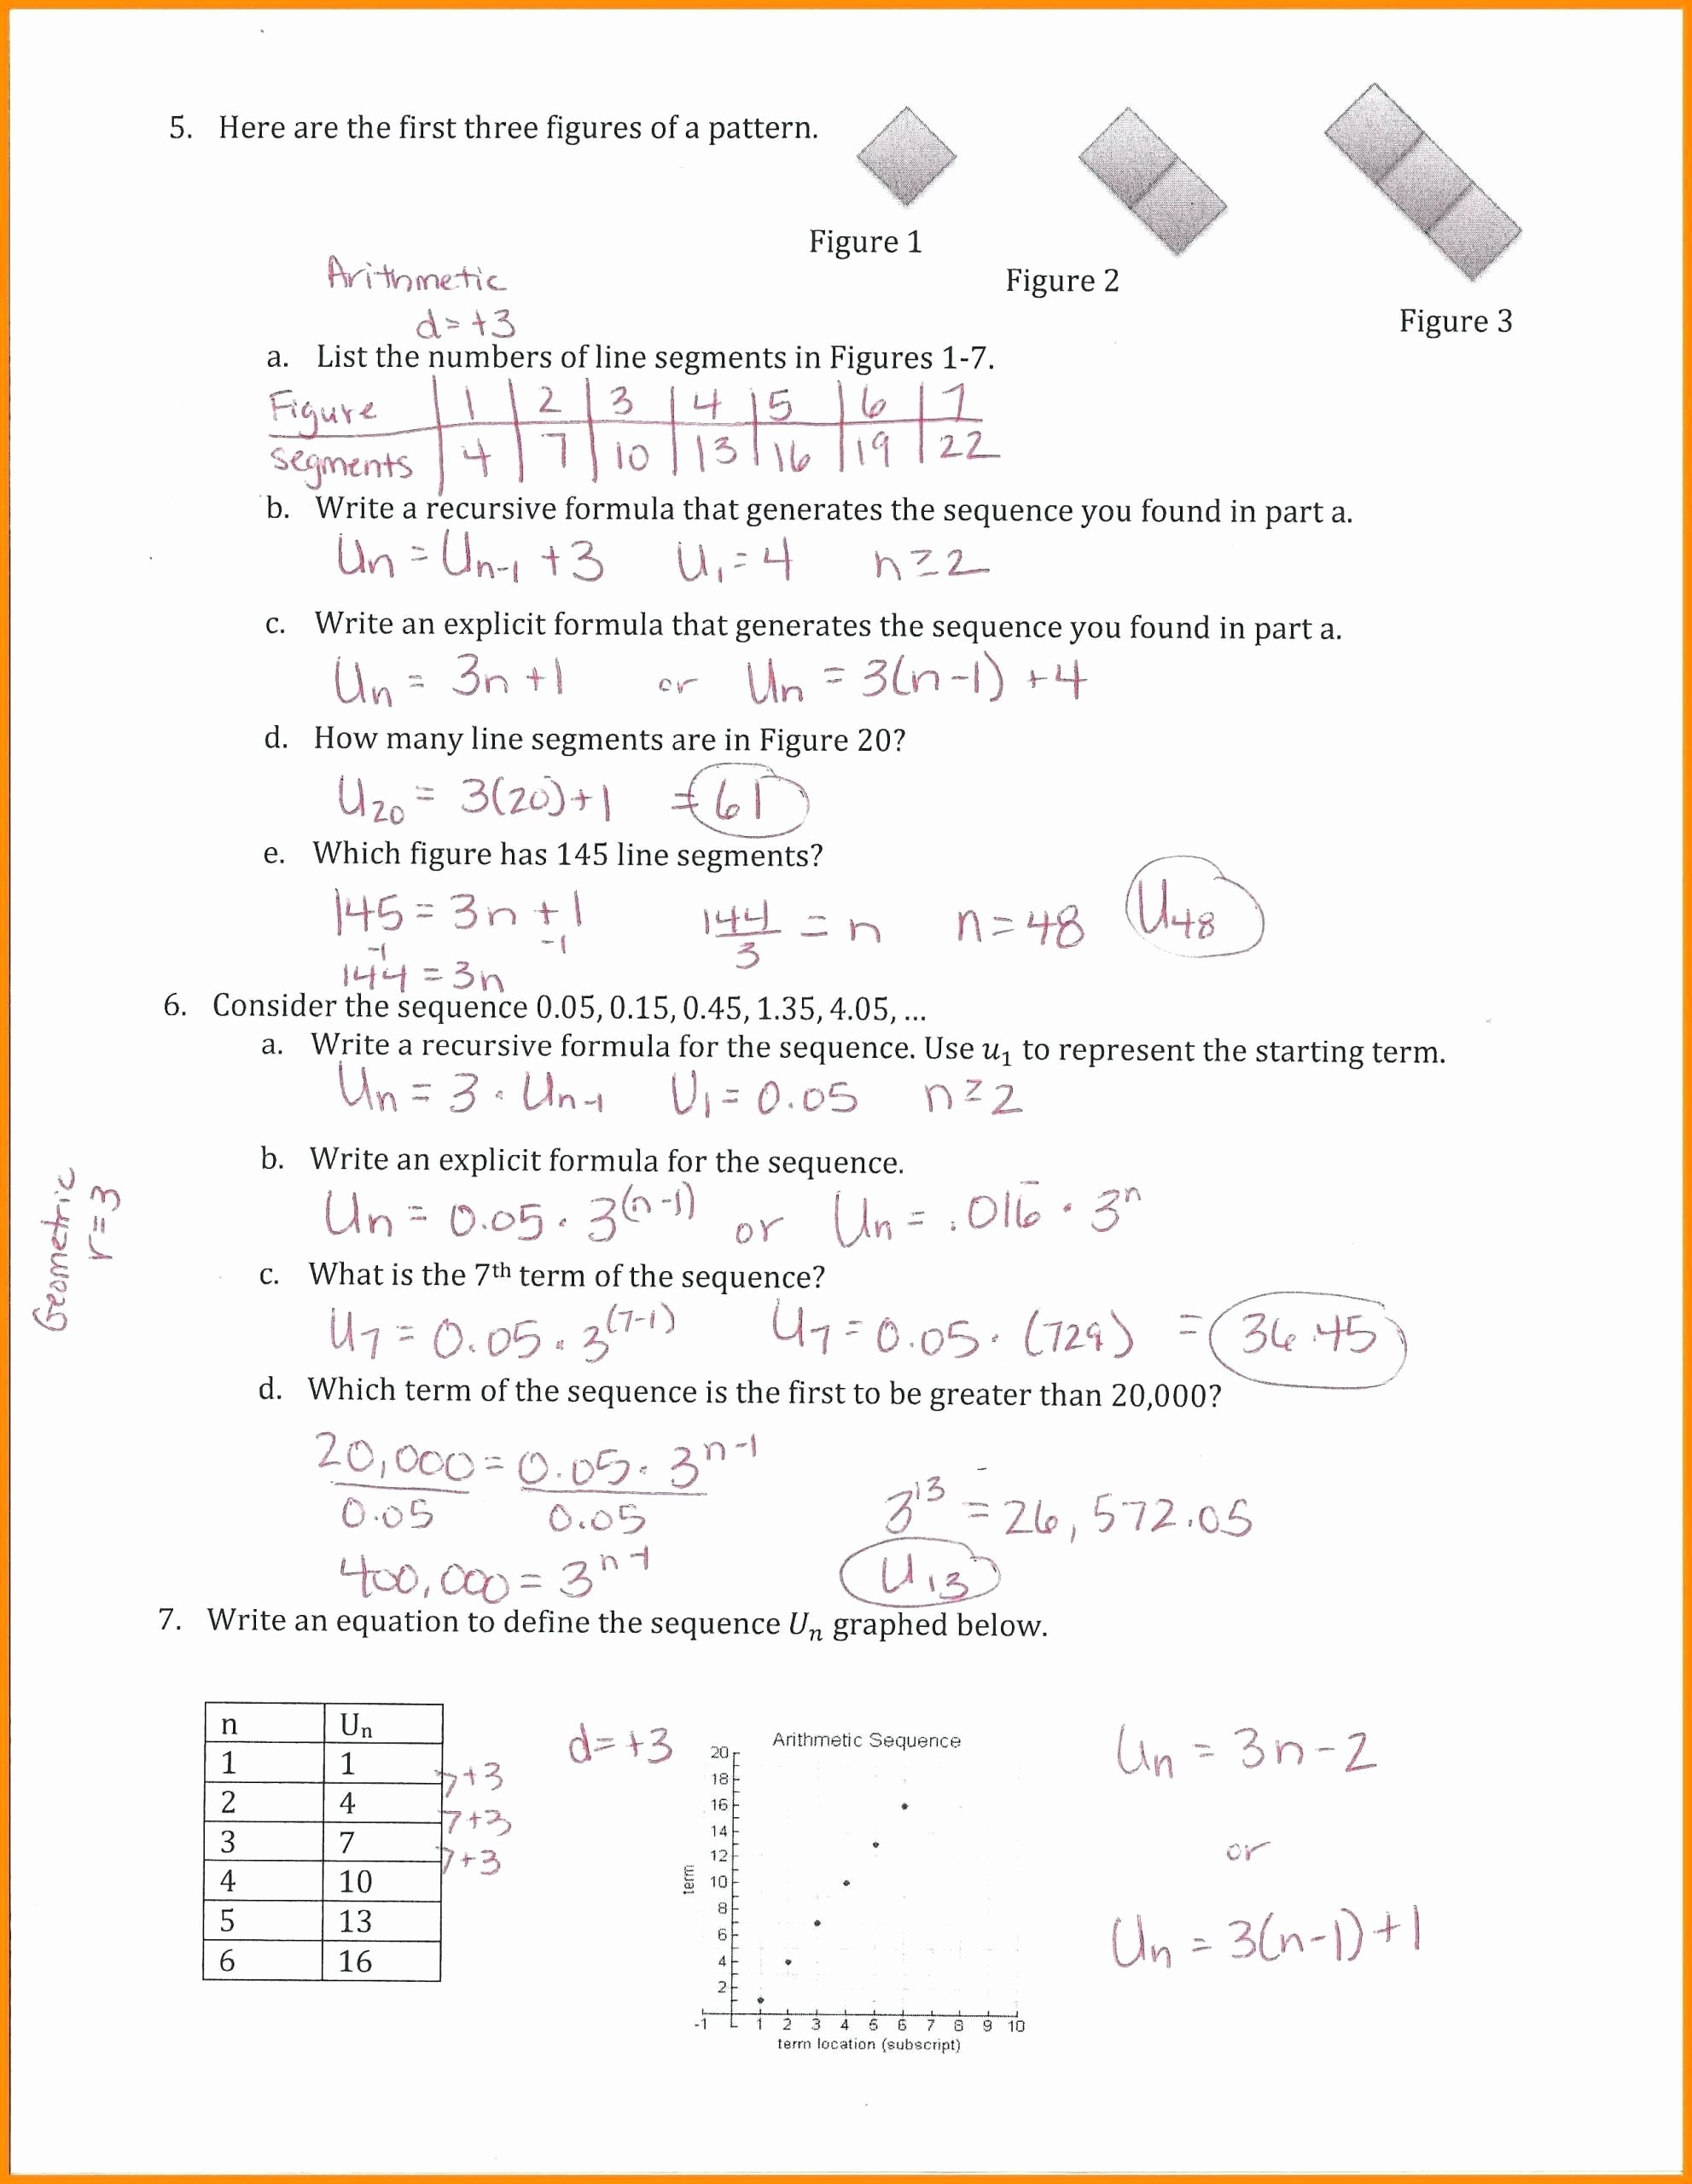 Geometric and Arithmetic Sequence Worksheet Kids Arithmetic Sequence Worksheet Answers Geometric and